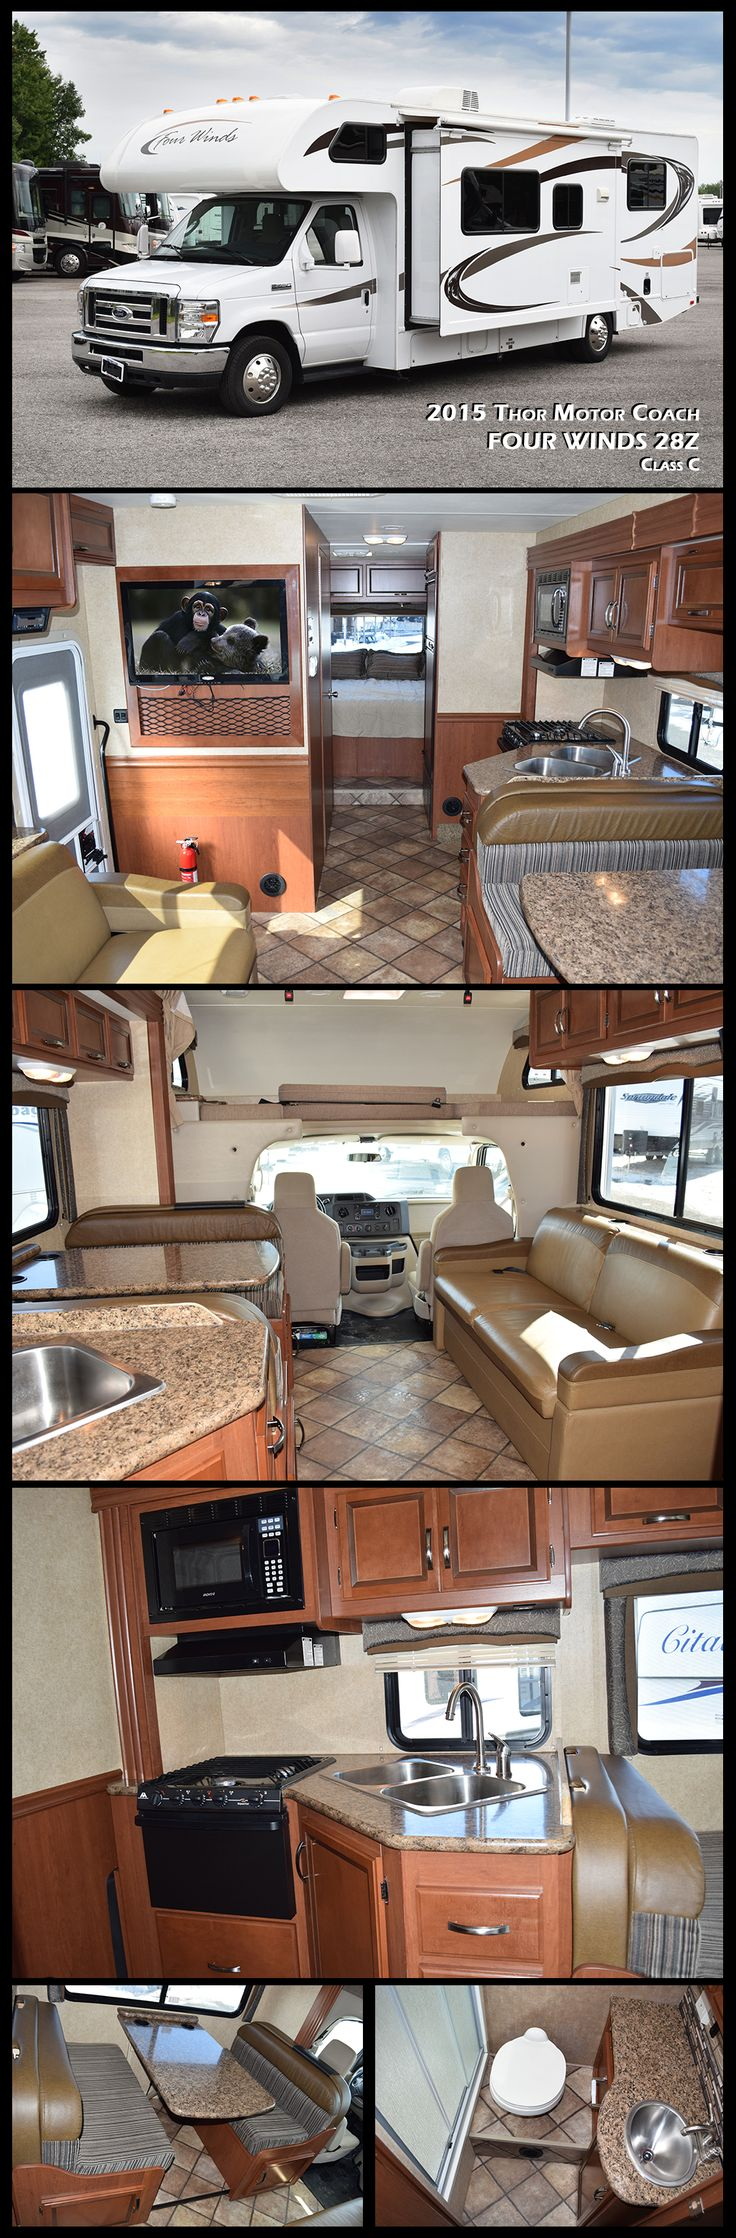 Small class c rv models quotes - 2015 Thor Motor Coach Four Winds 18058 Used Class C Rv For Sale In North Tonawanda New York